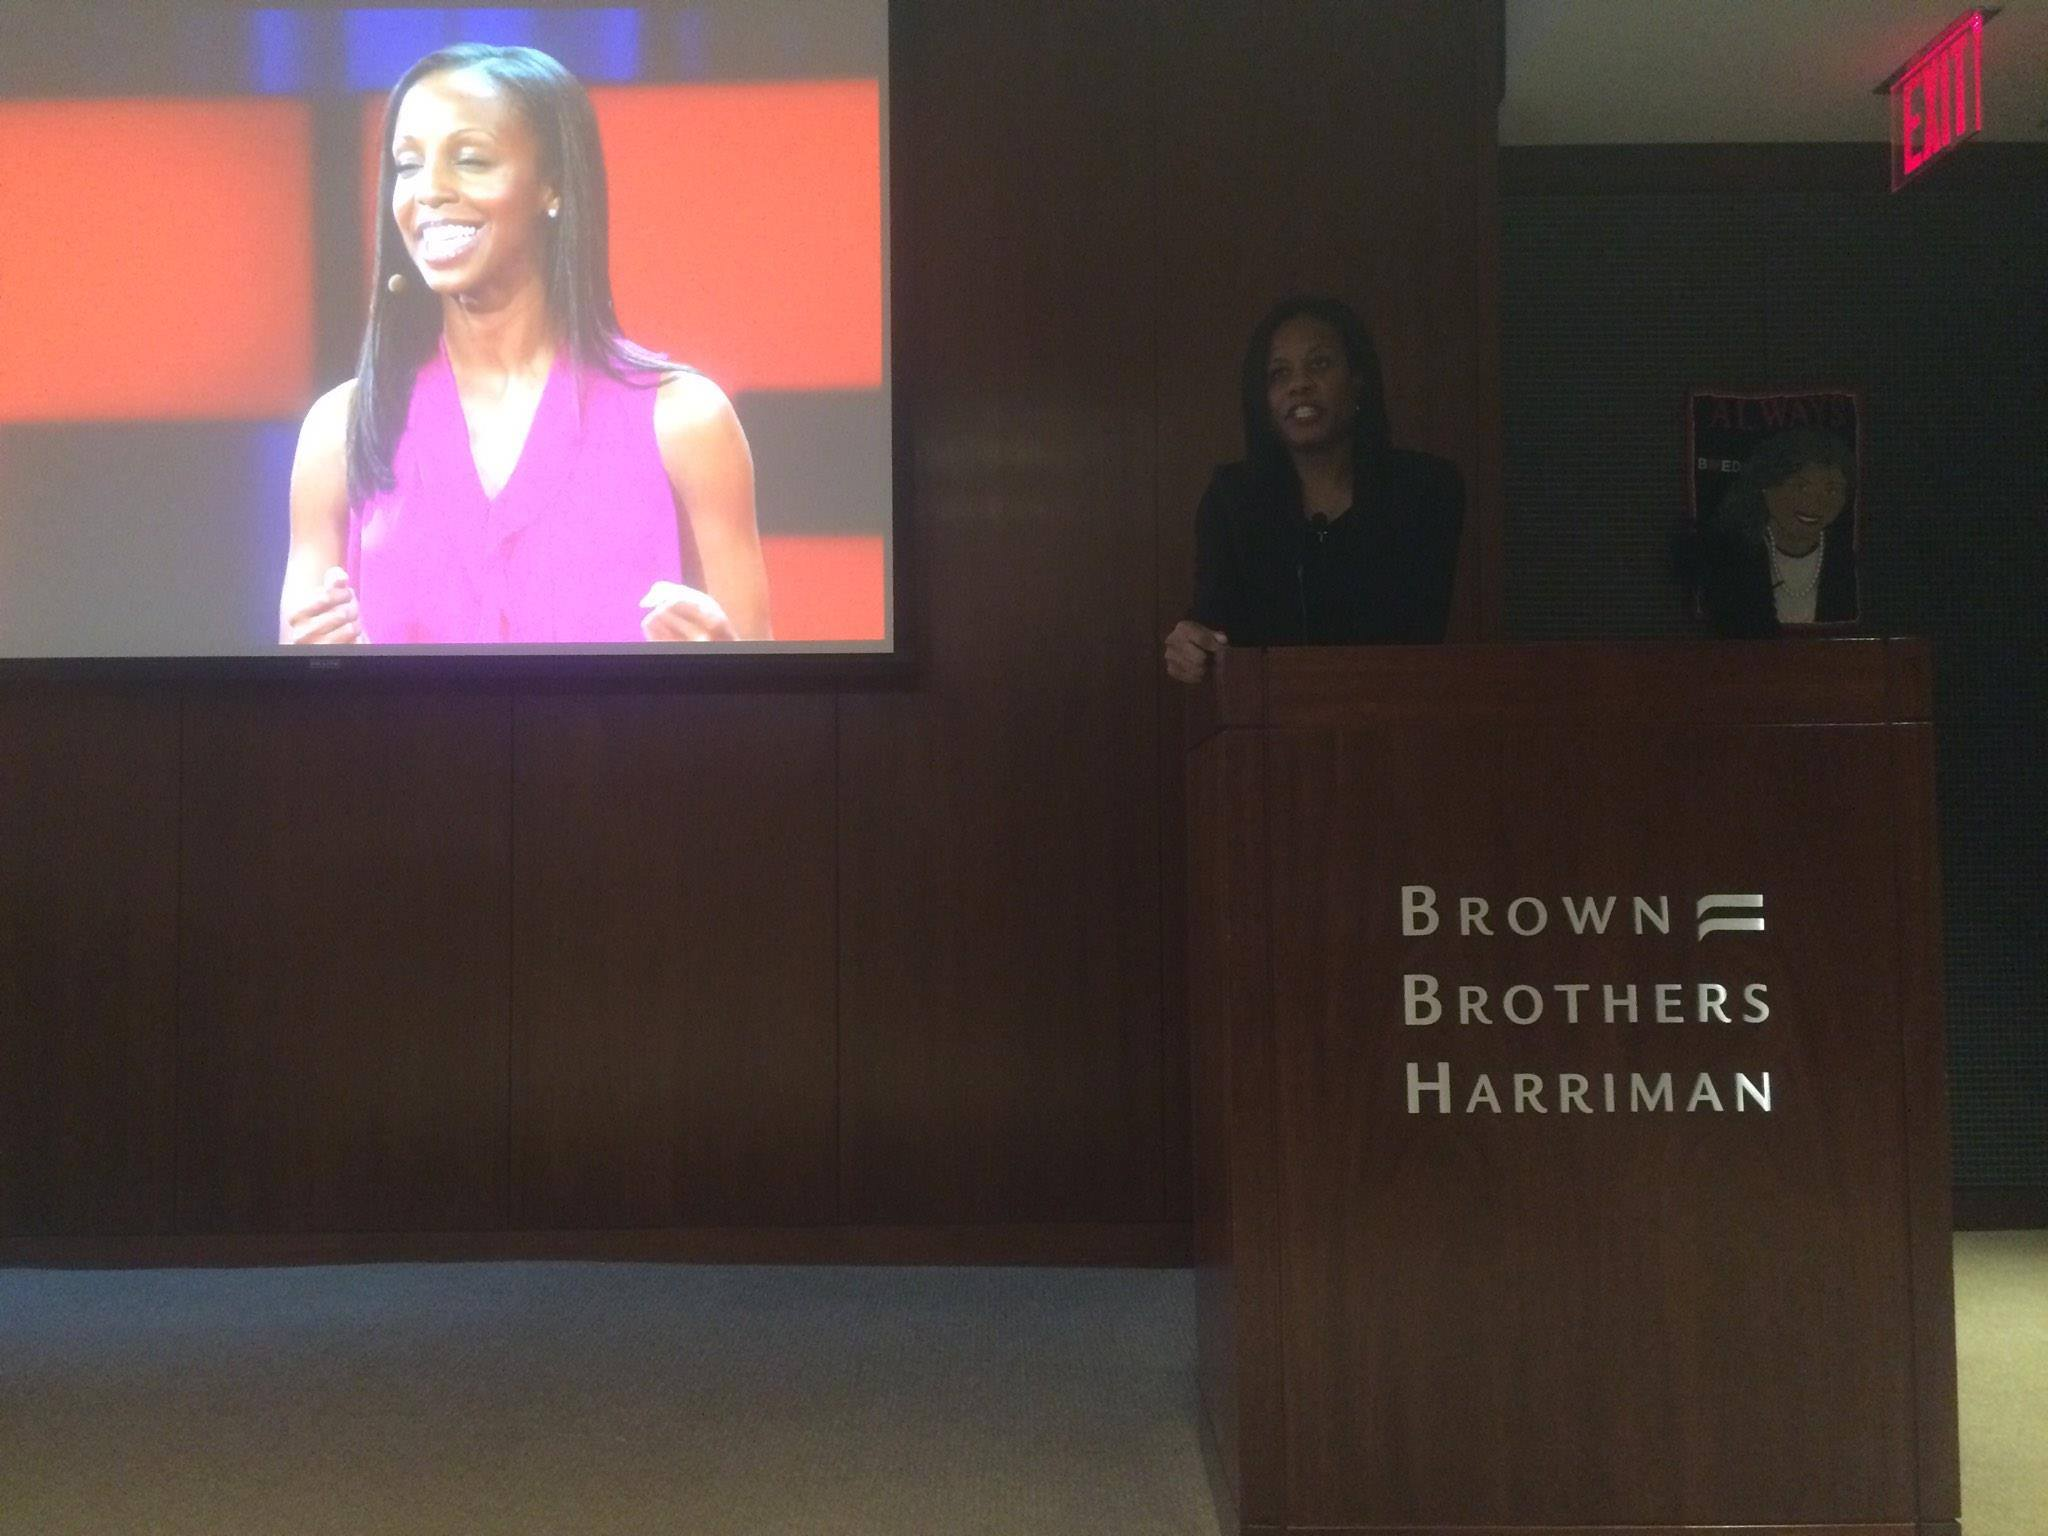 Speaking at Brown Brothers Harriman